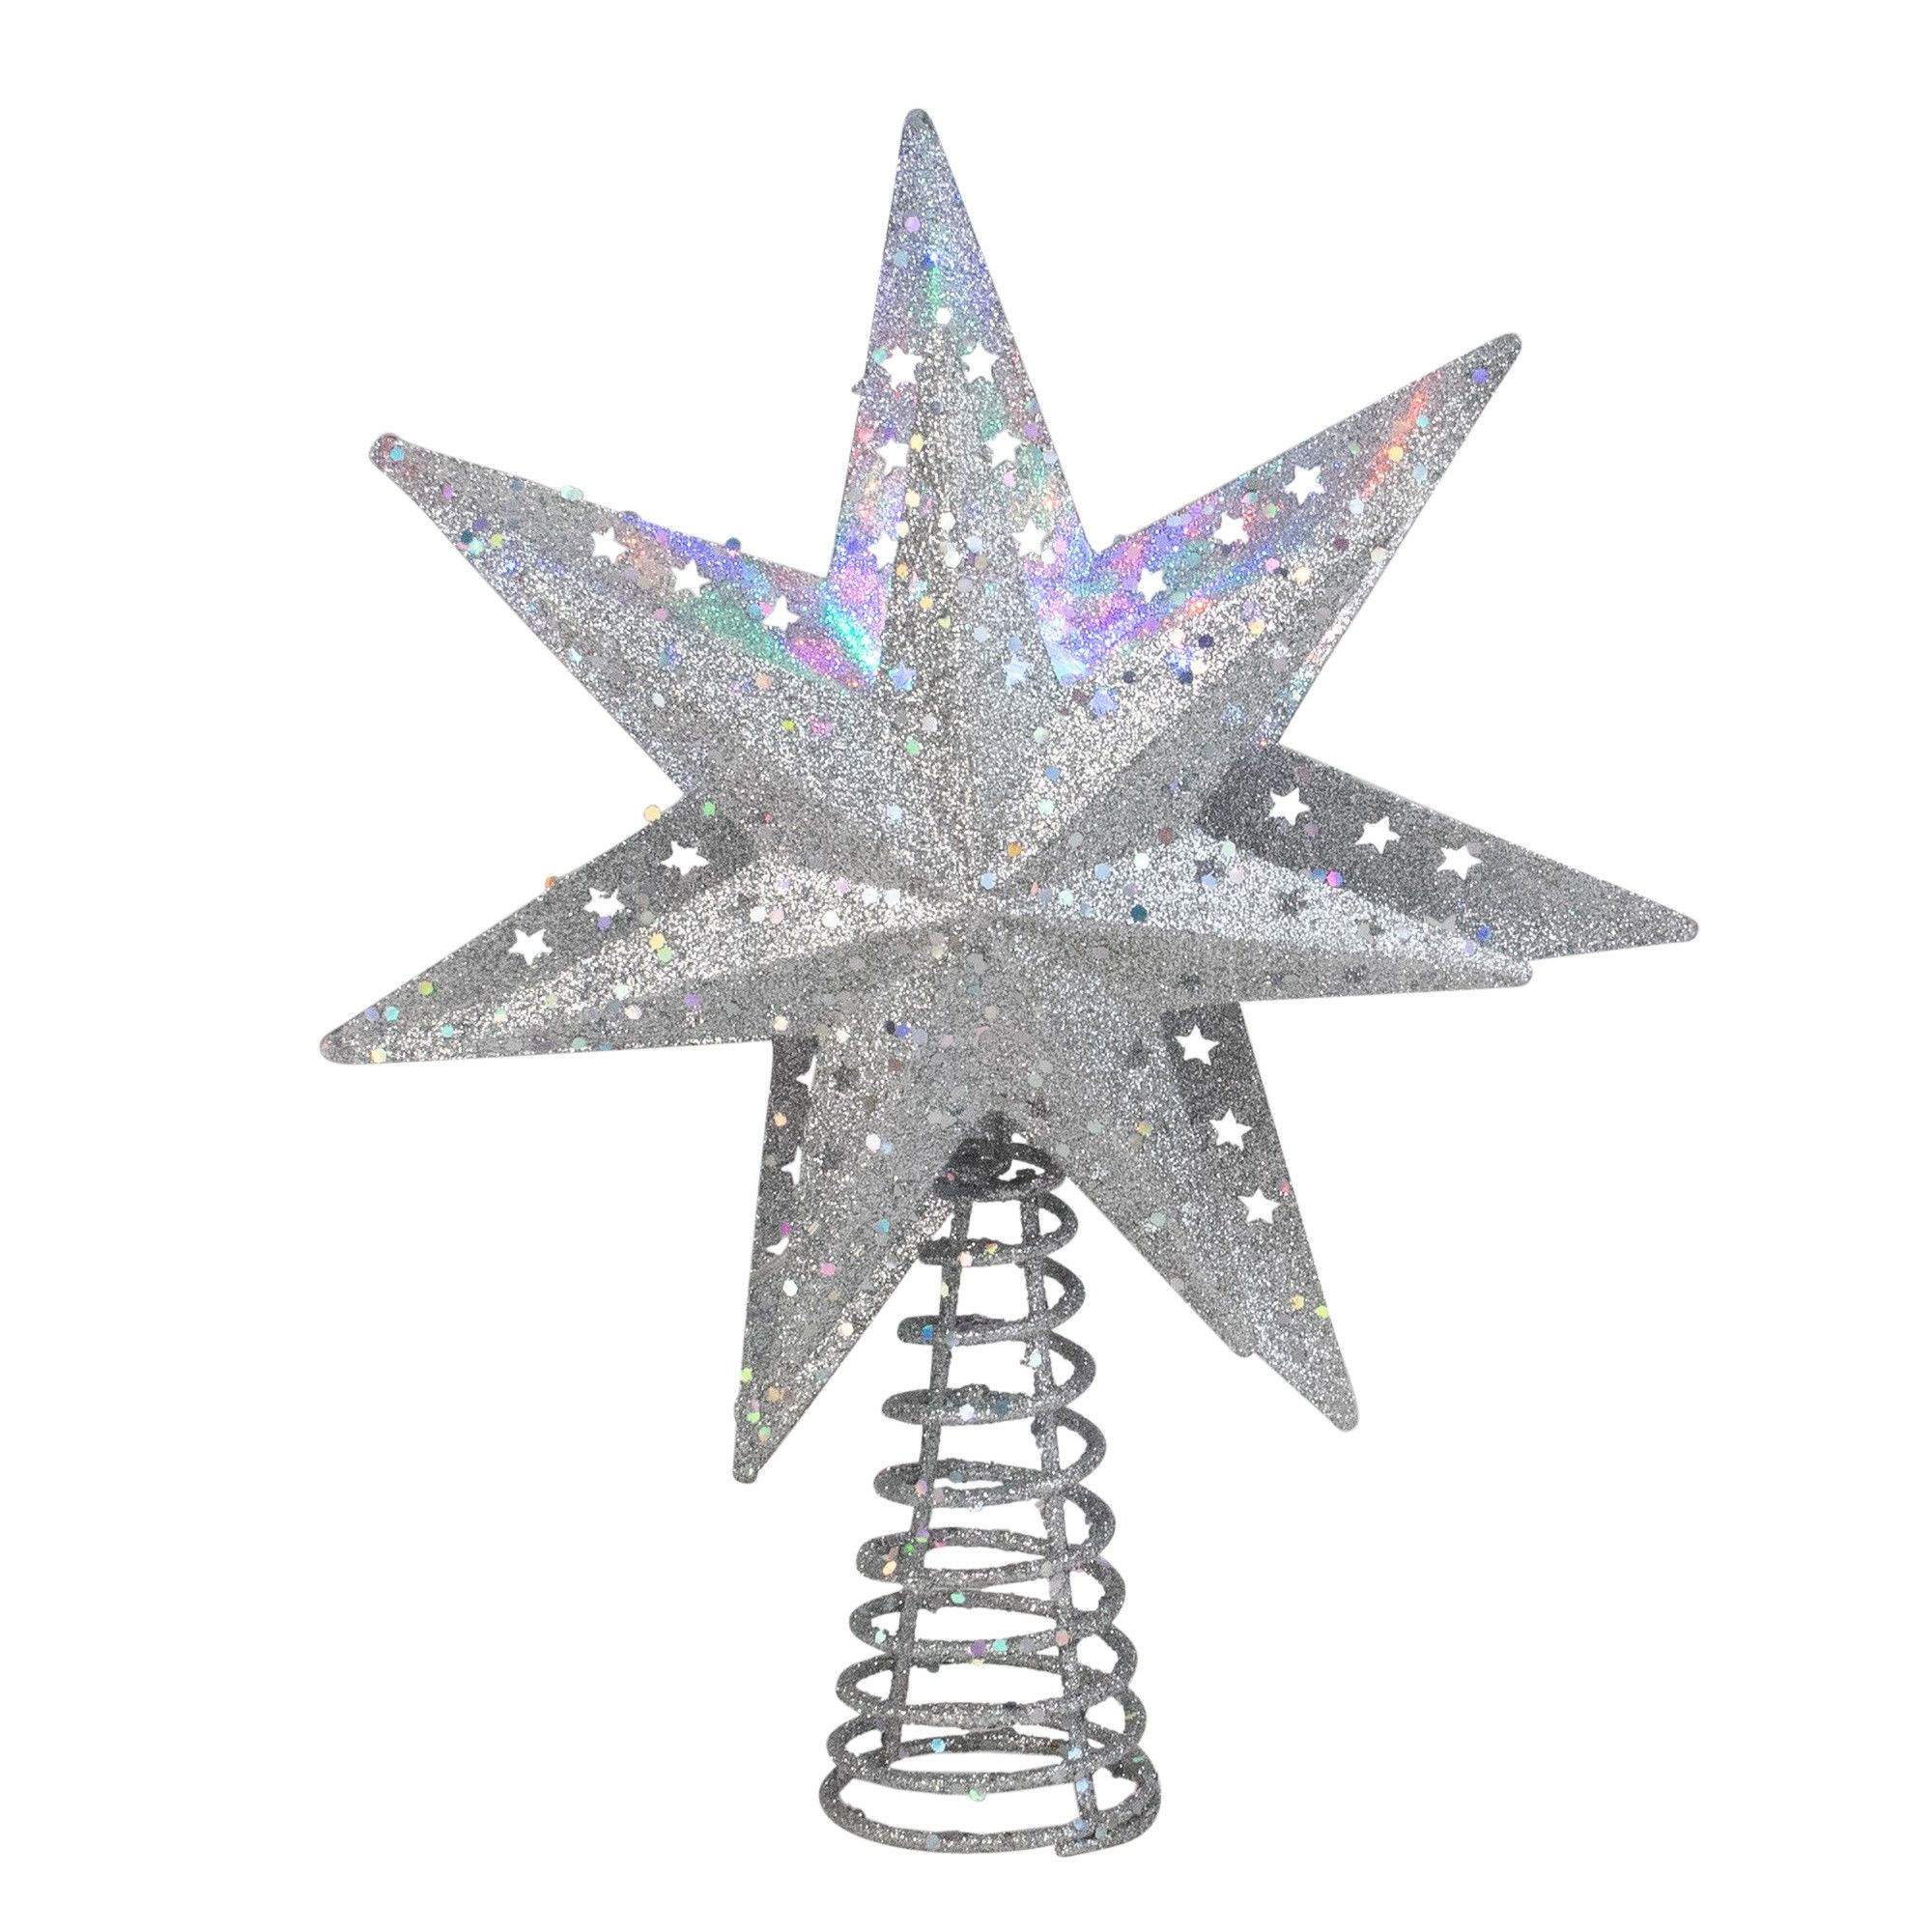 Kurt S Adler 12 Quot Led Lighted 3 D Silver Star With A